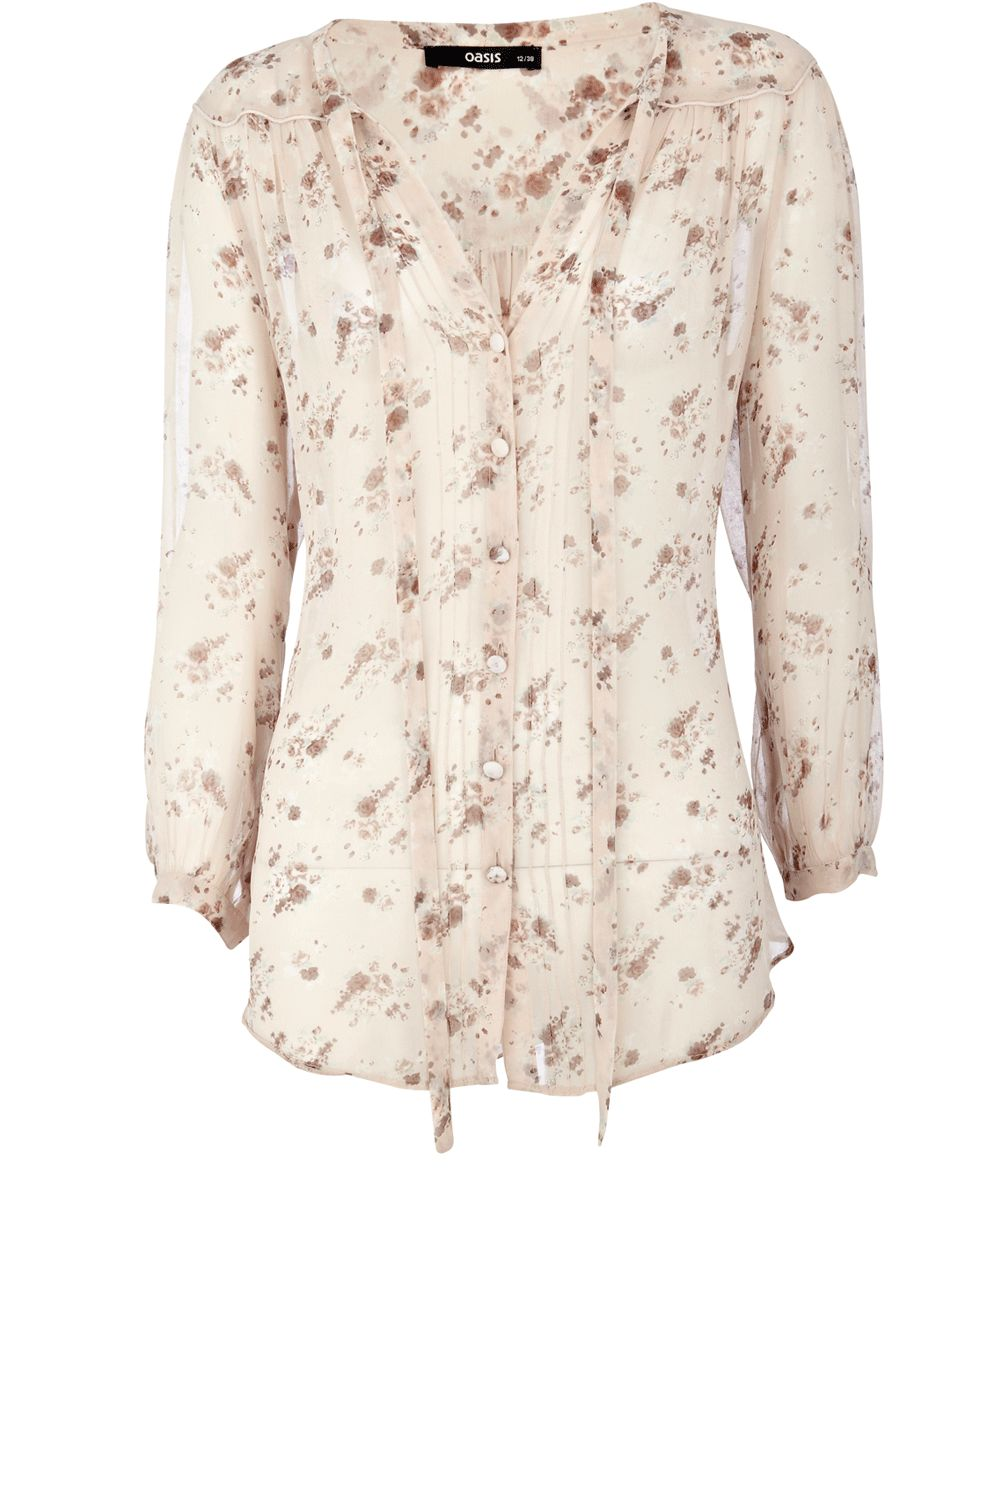 Oasis Oversized floral print blouse - Multi-Coloured product image